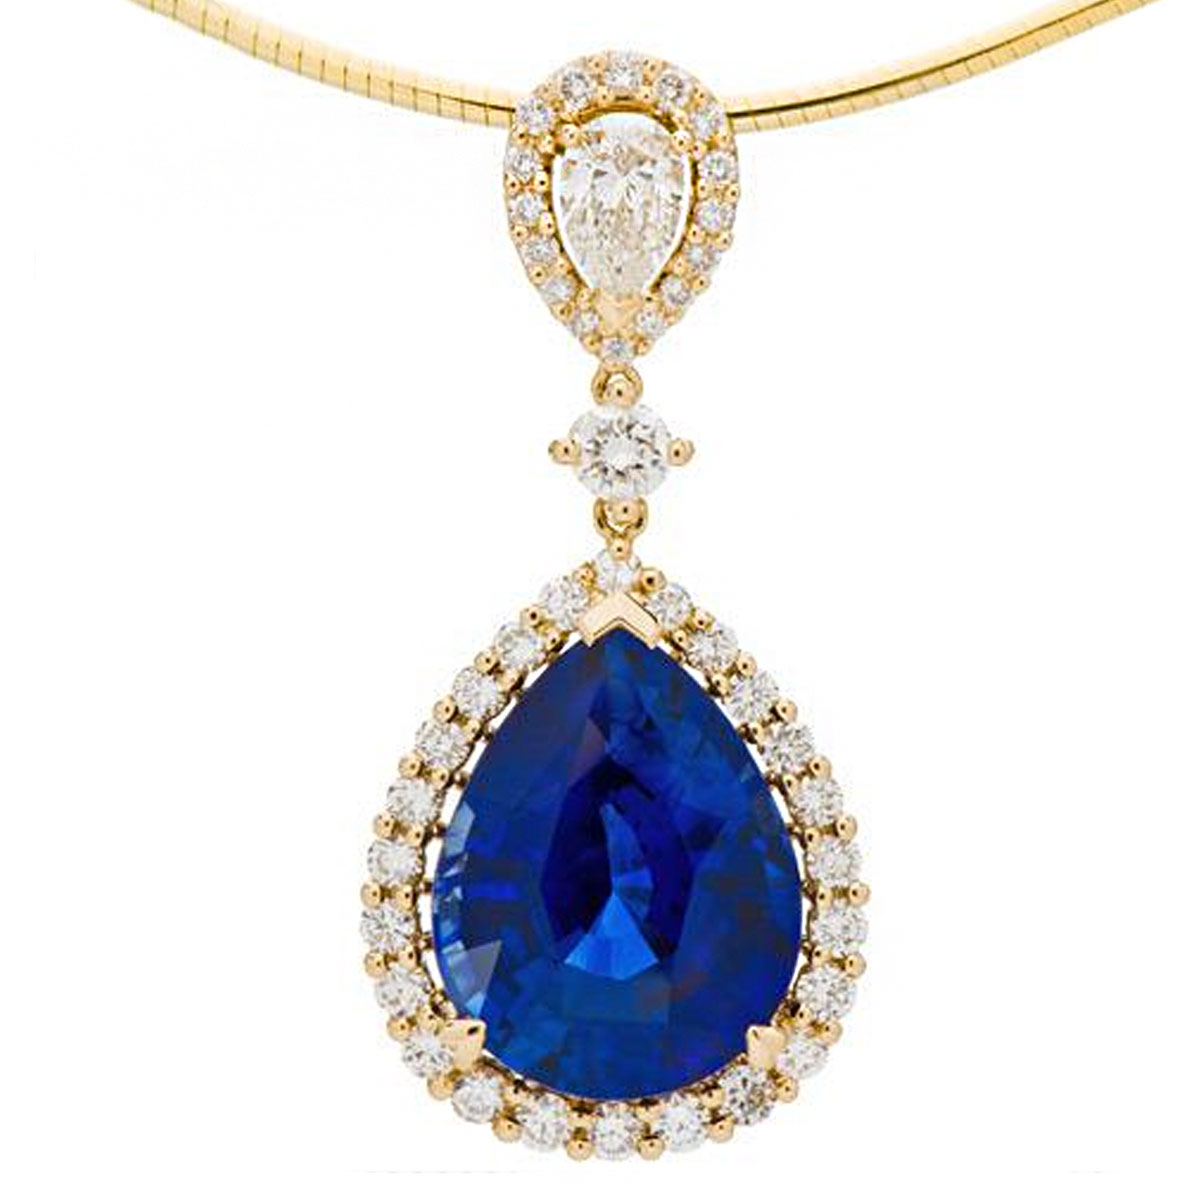 Amoro 18k Yellow Gold 11.88ct Ceylon Sapphire Diamond Necklace